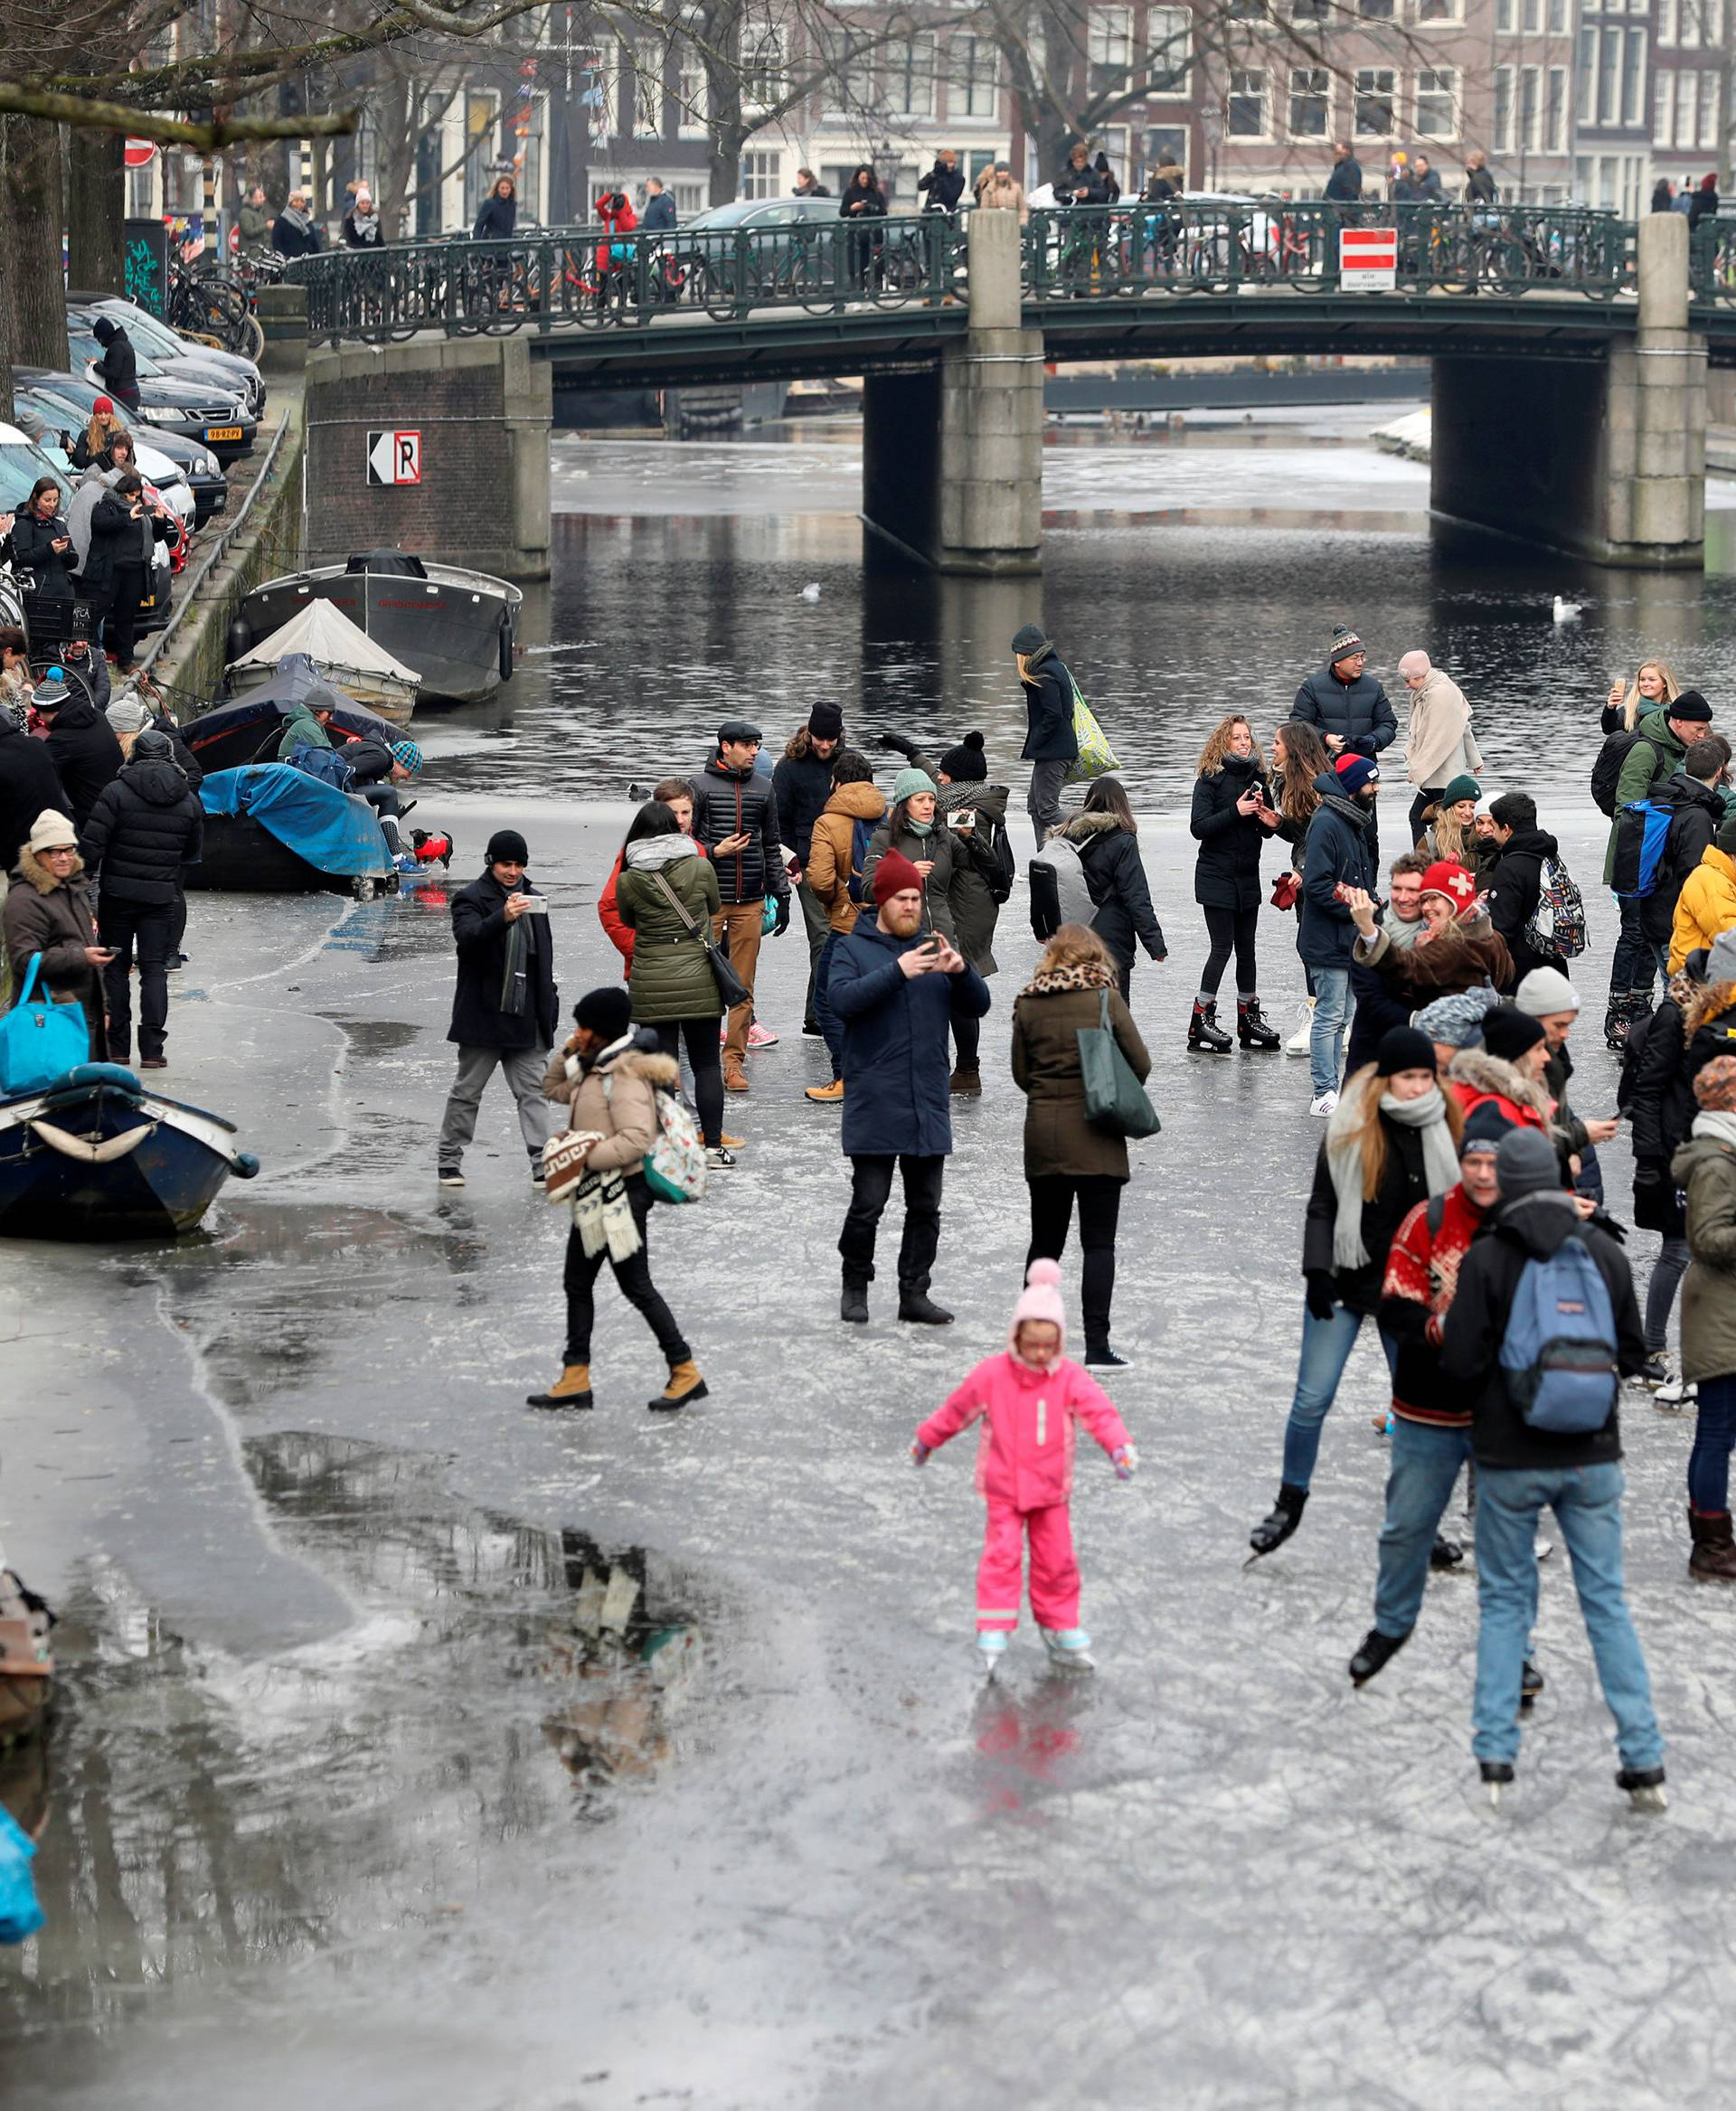 Ice skaters skate and walk on the frozen Prinsengracht canal during icy weather in Amsterdam